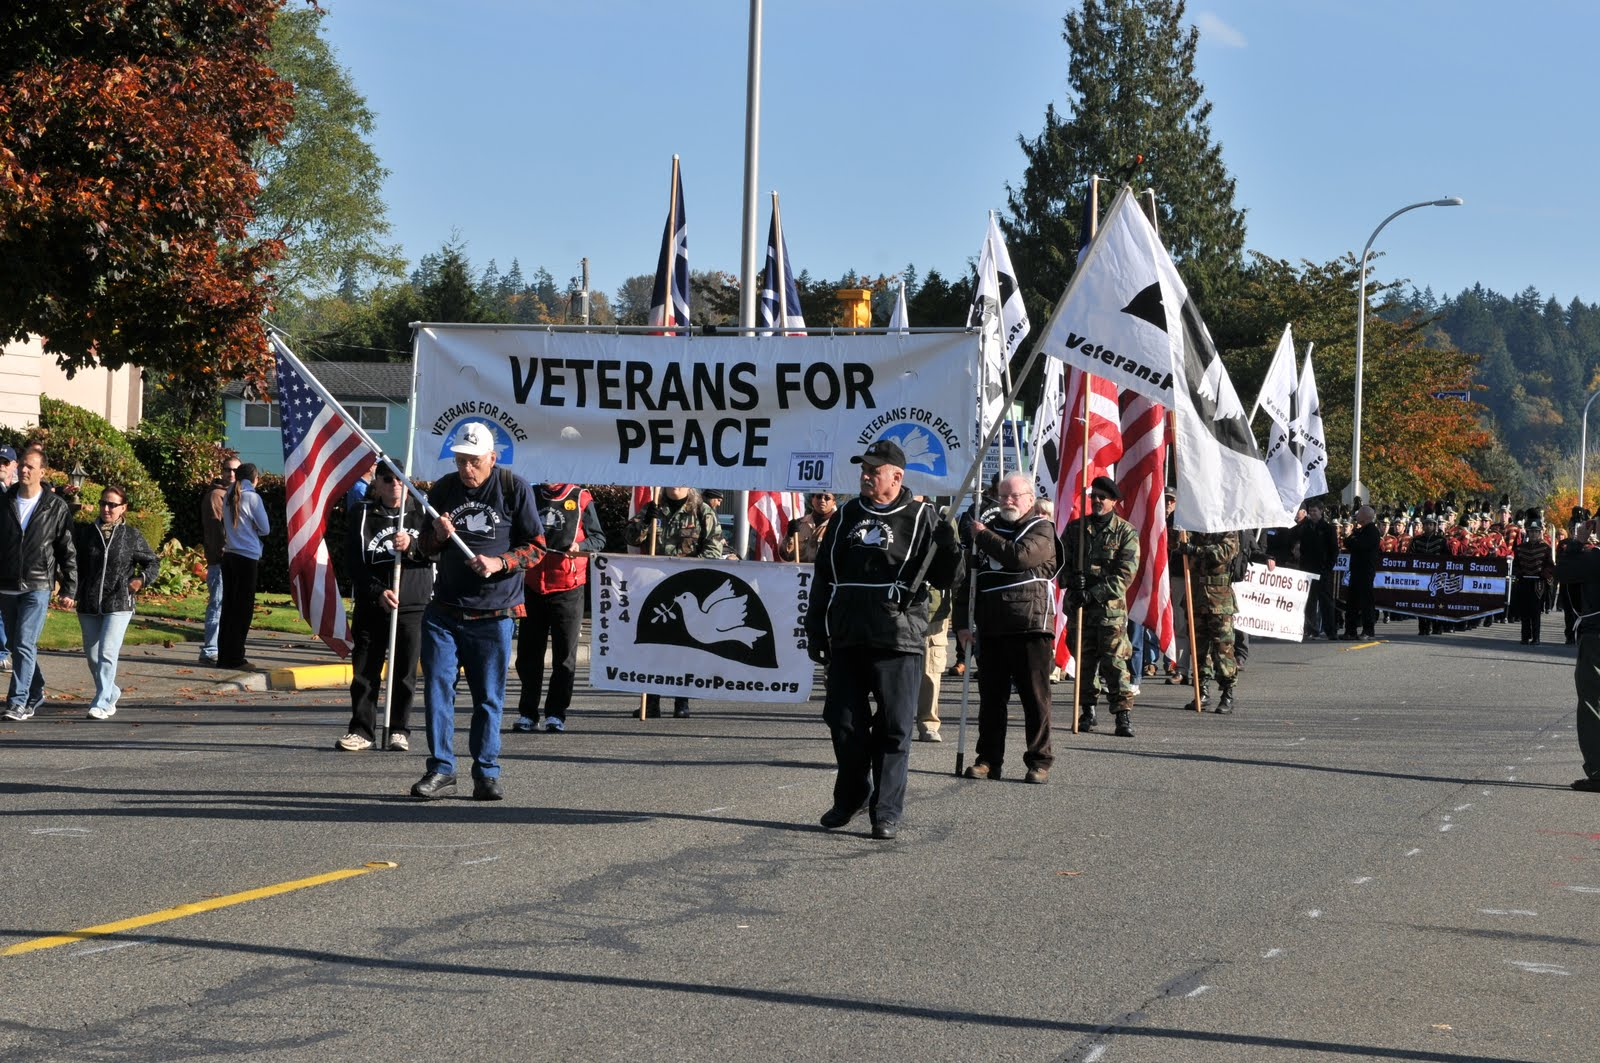 Photo of veterans for peace marching linking to an article about Veterans For Peace Sues to March in Veterans Day Parade